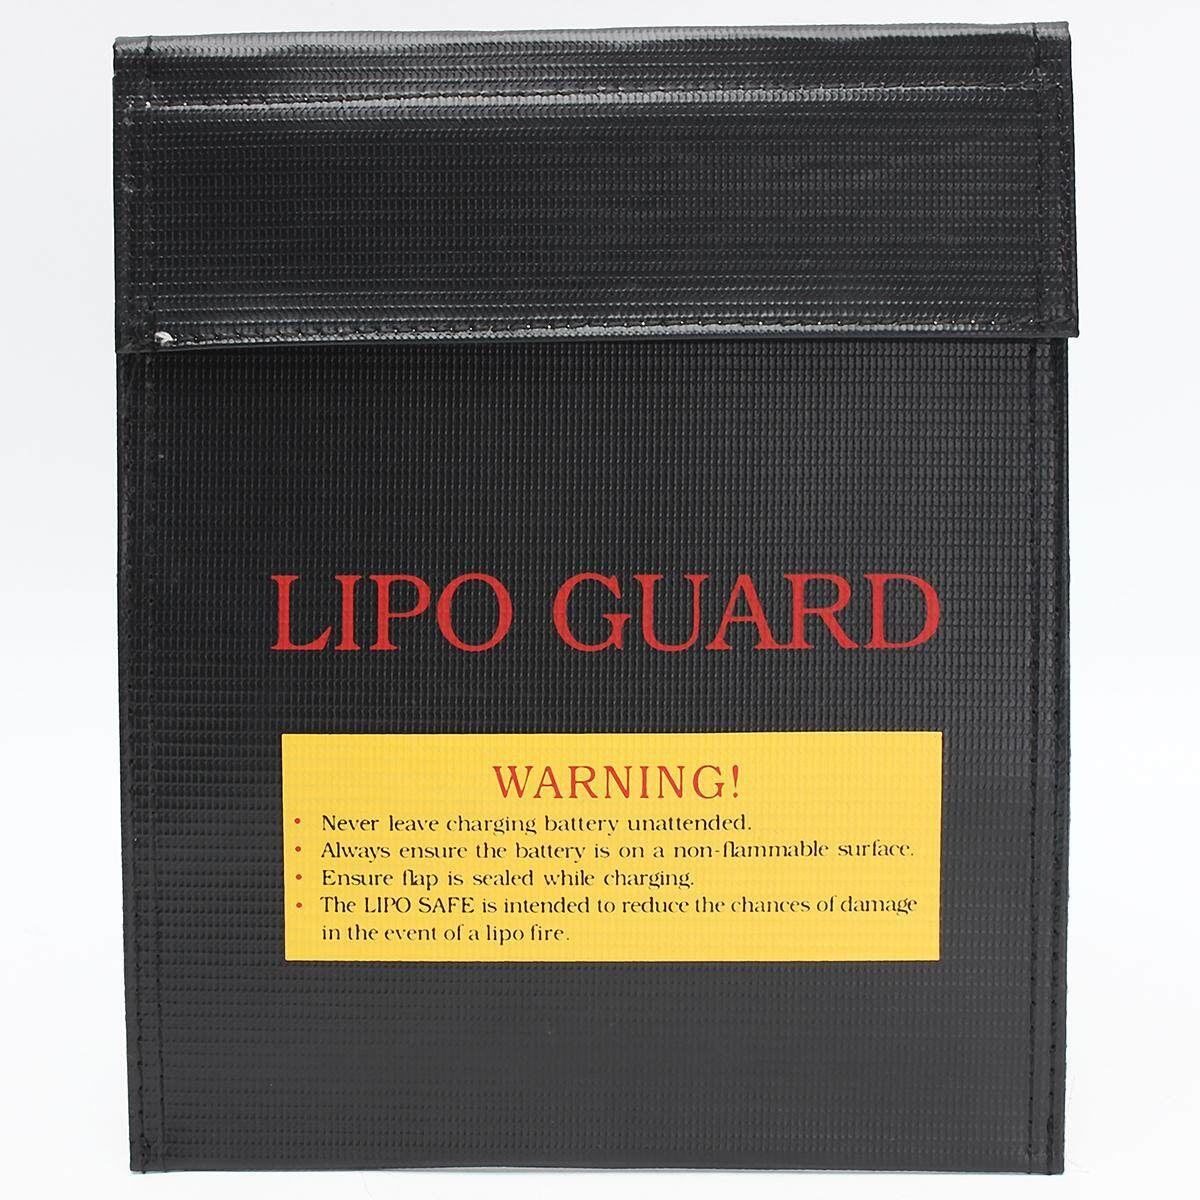 18x23cm Rc Lipo Guard Charging Explosion Protection Bags Safe Fire Proof By Moonbeam.